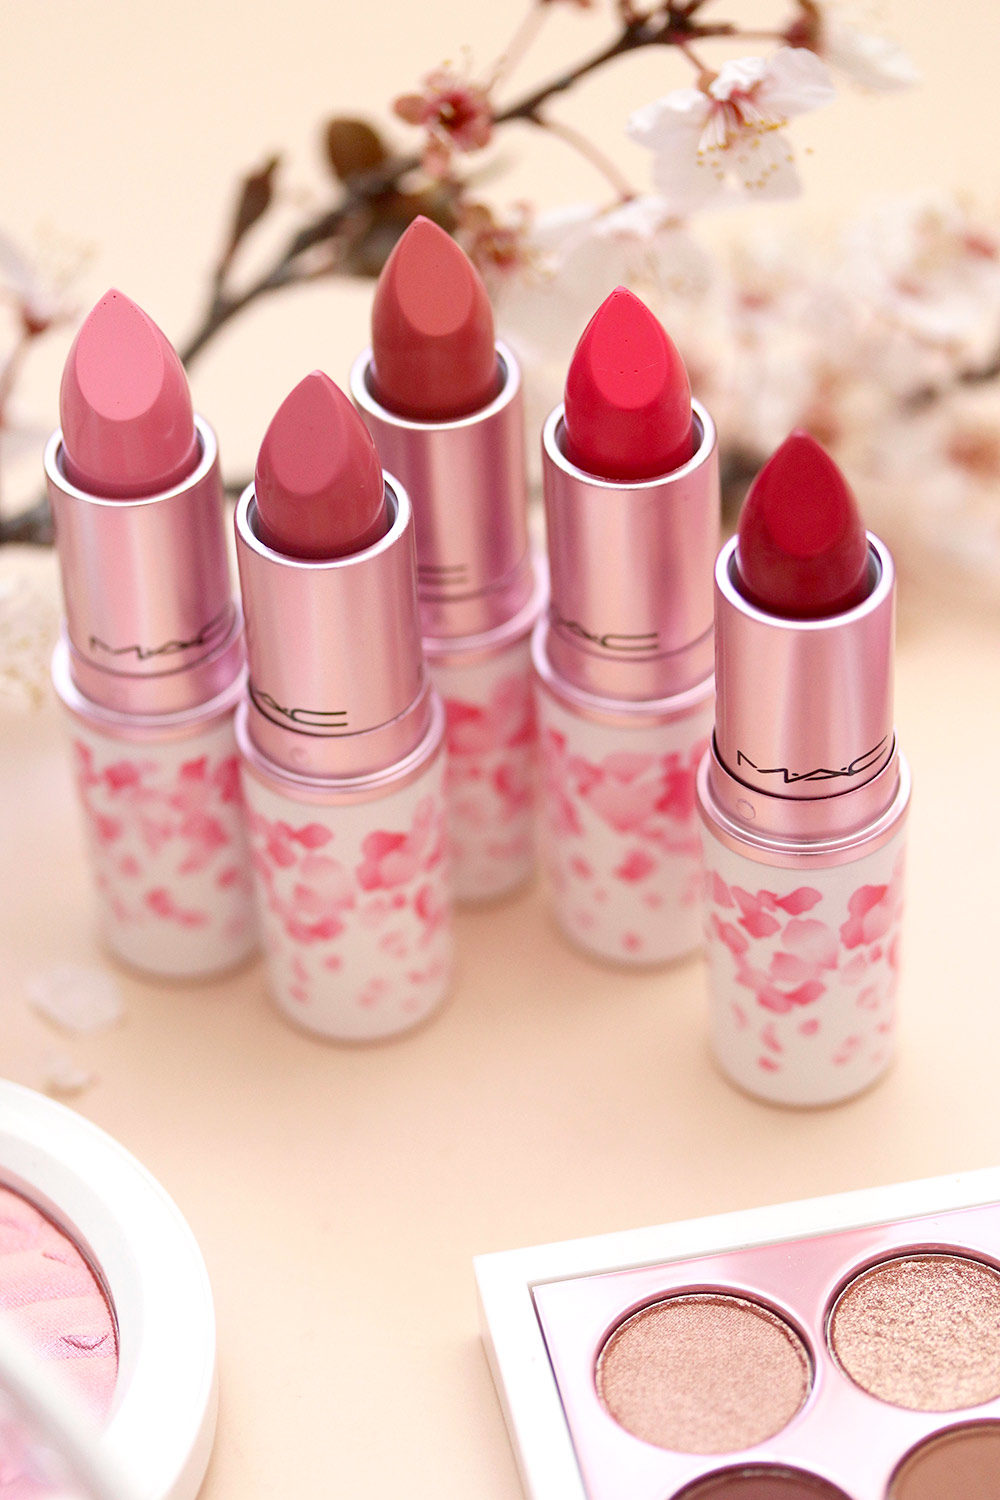 Mac Cosmetic Lipstick Fresh Brew 100 Authentic: The MAC Boom Boom Bloom Collection Offers A Bouquet Of